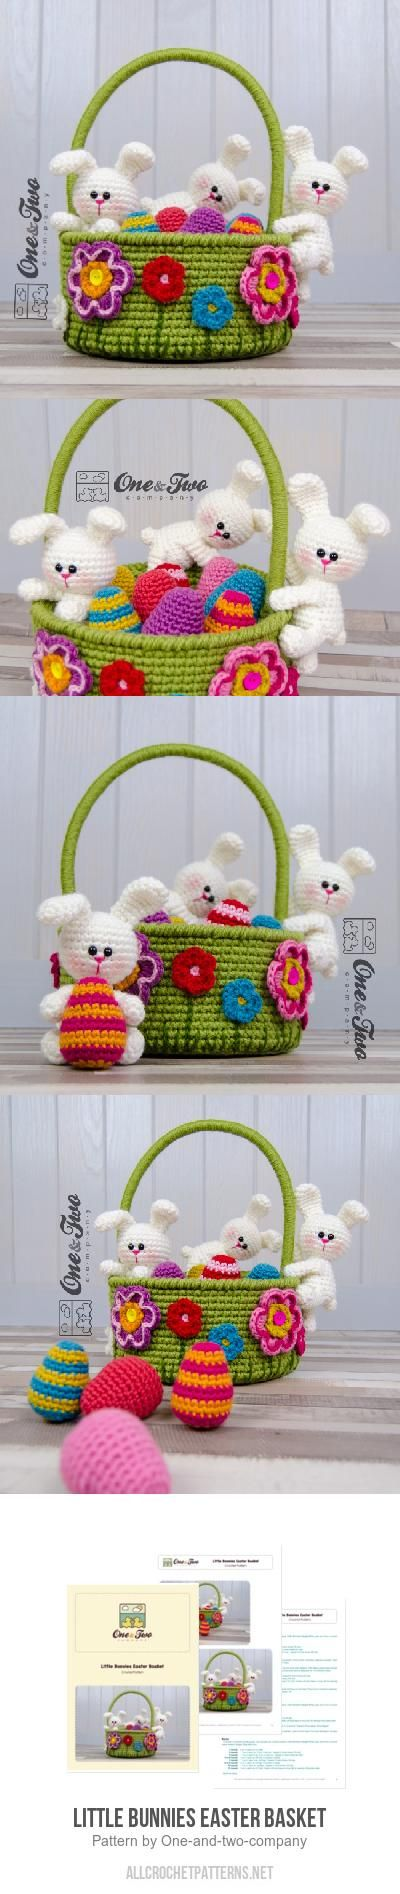 Little Bunnies Easter Basket Crochet Pattern By One And Two Company